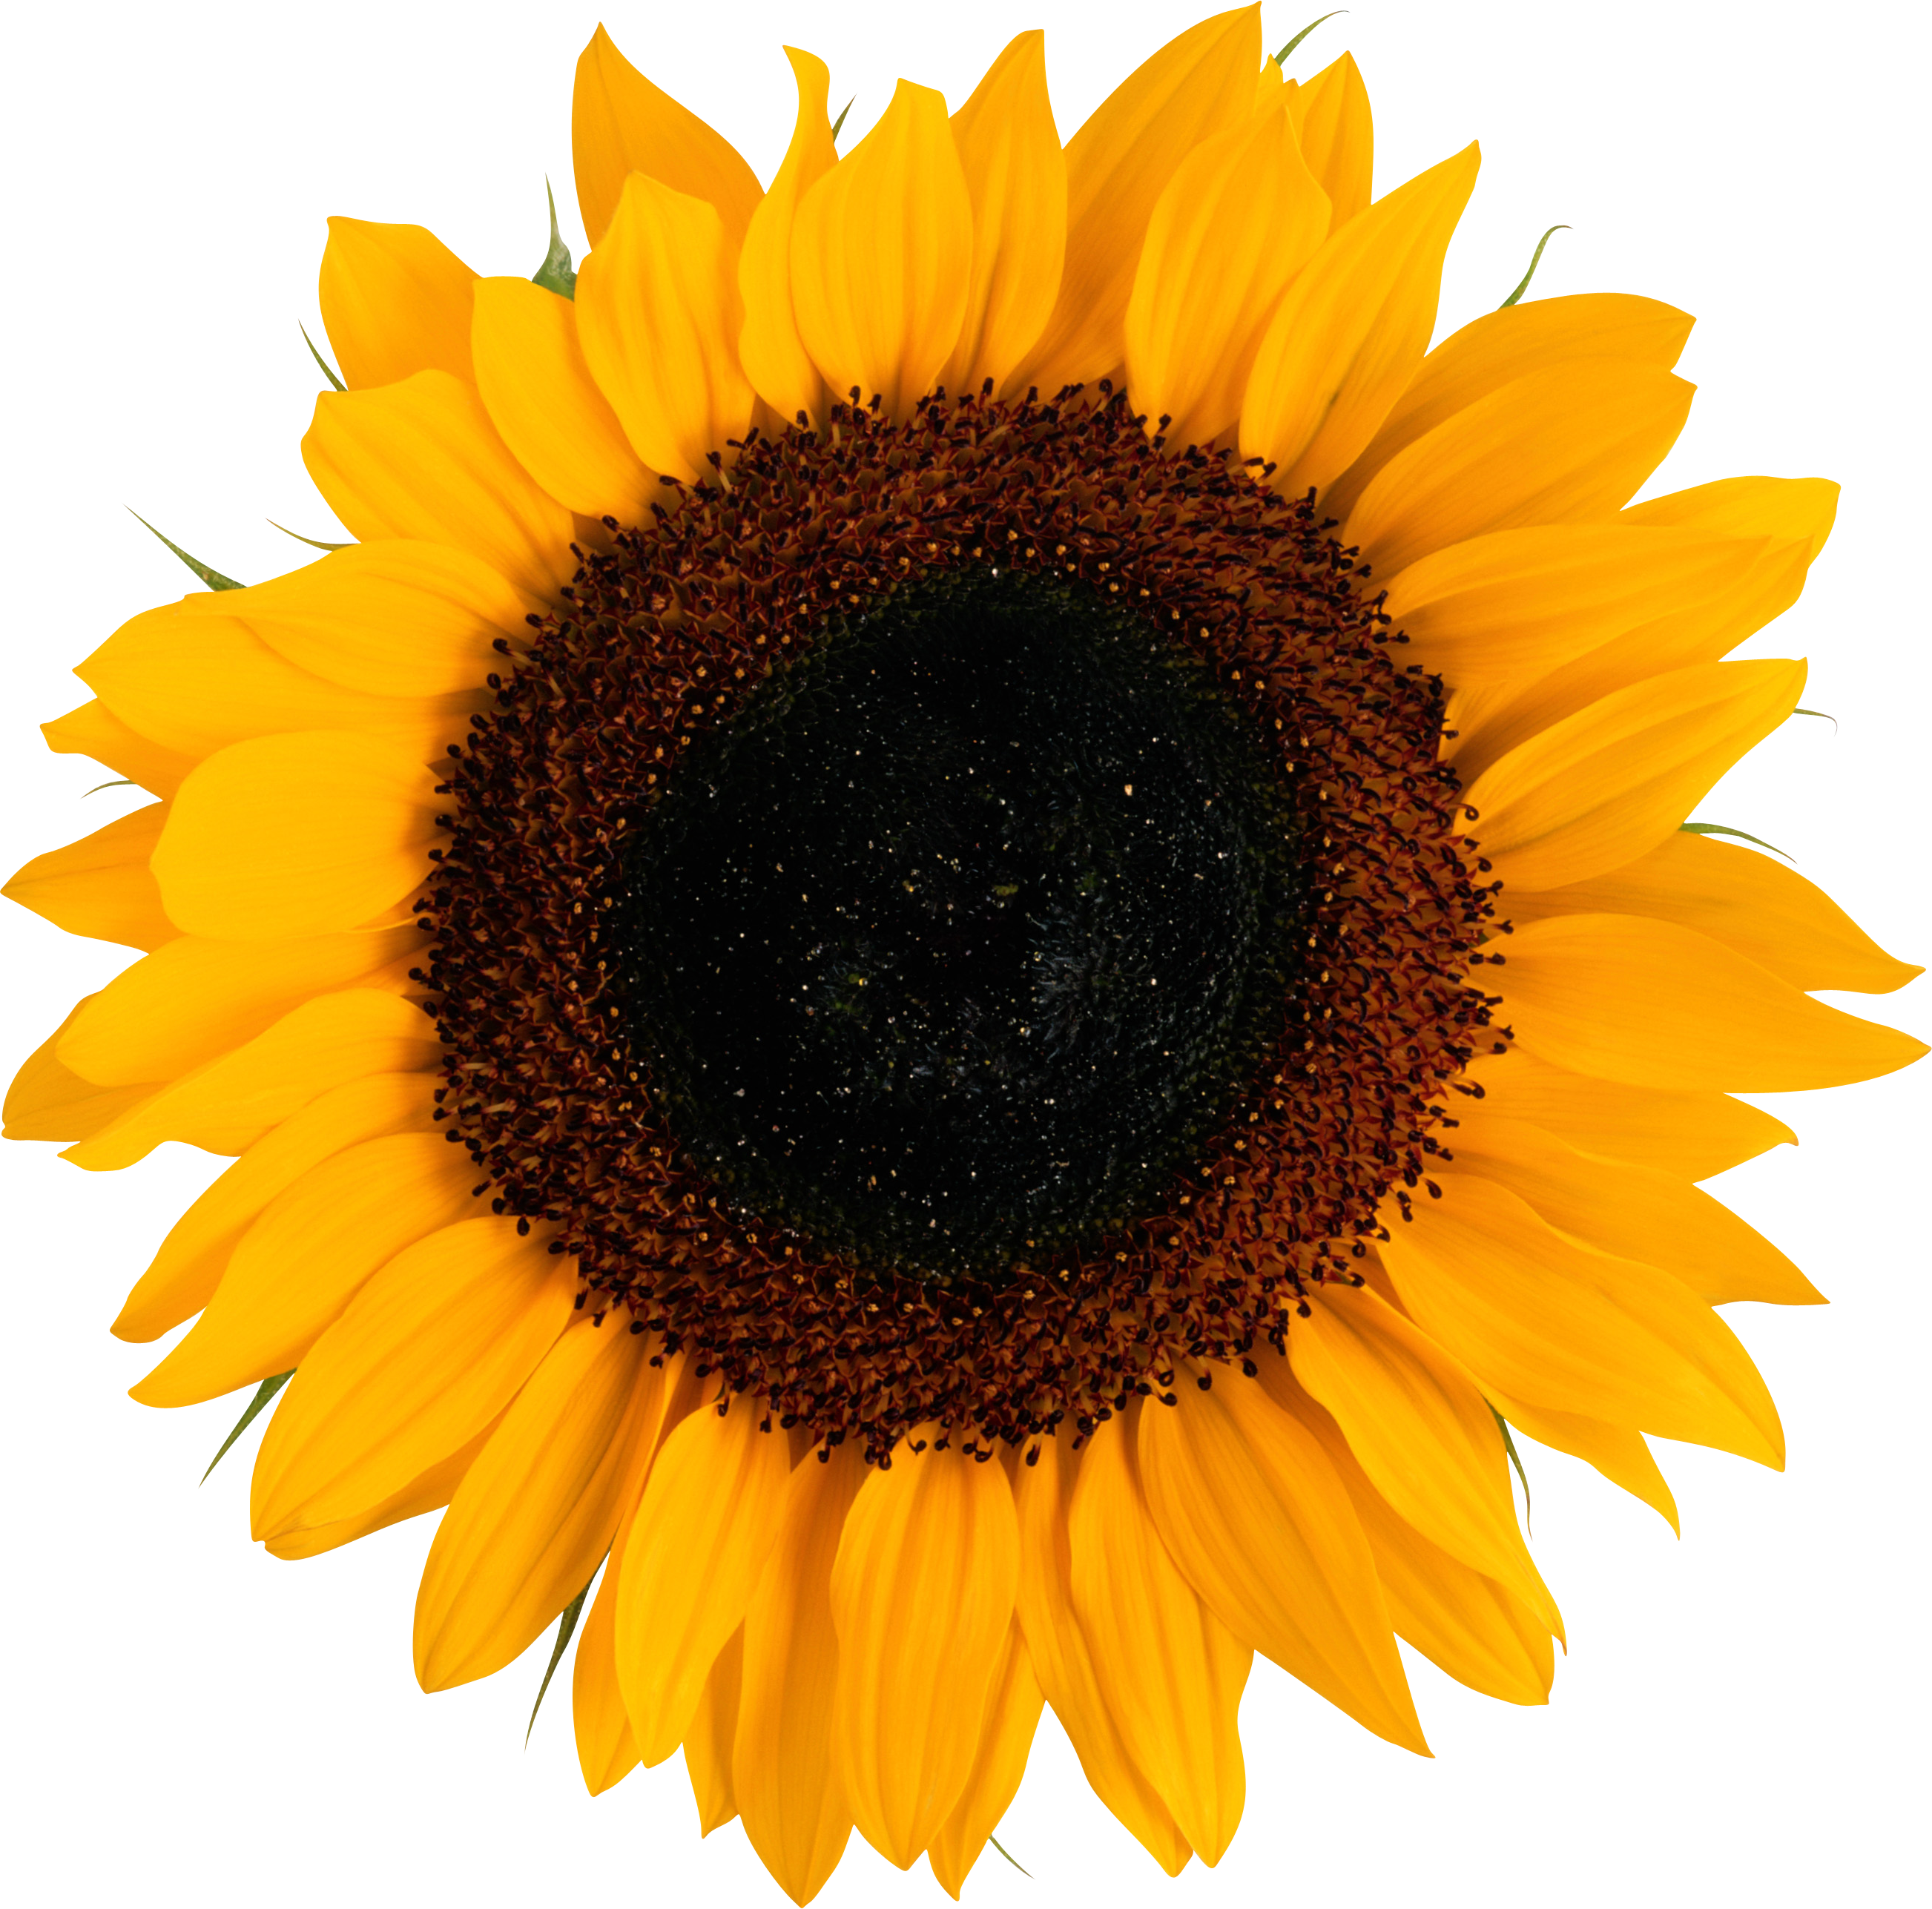 Sunflower clipart realistic. Png images free download